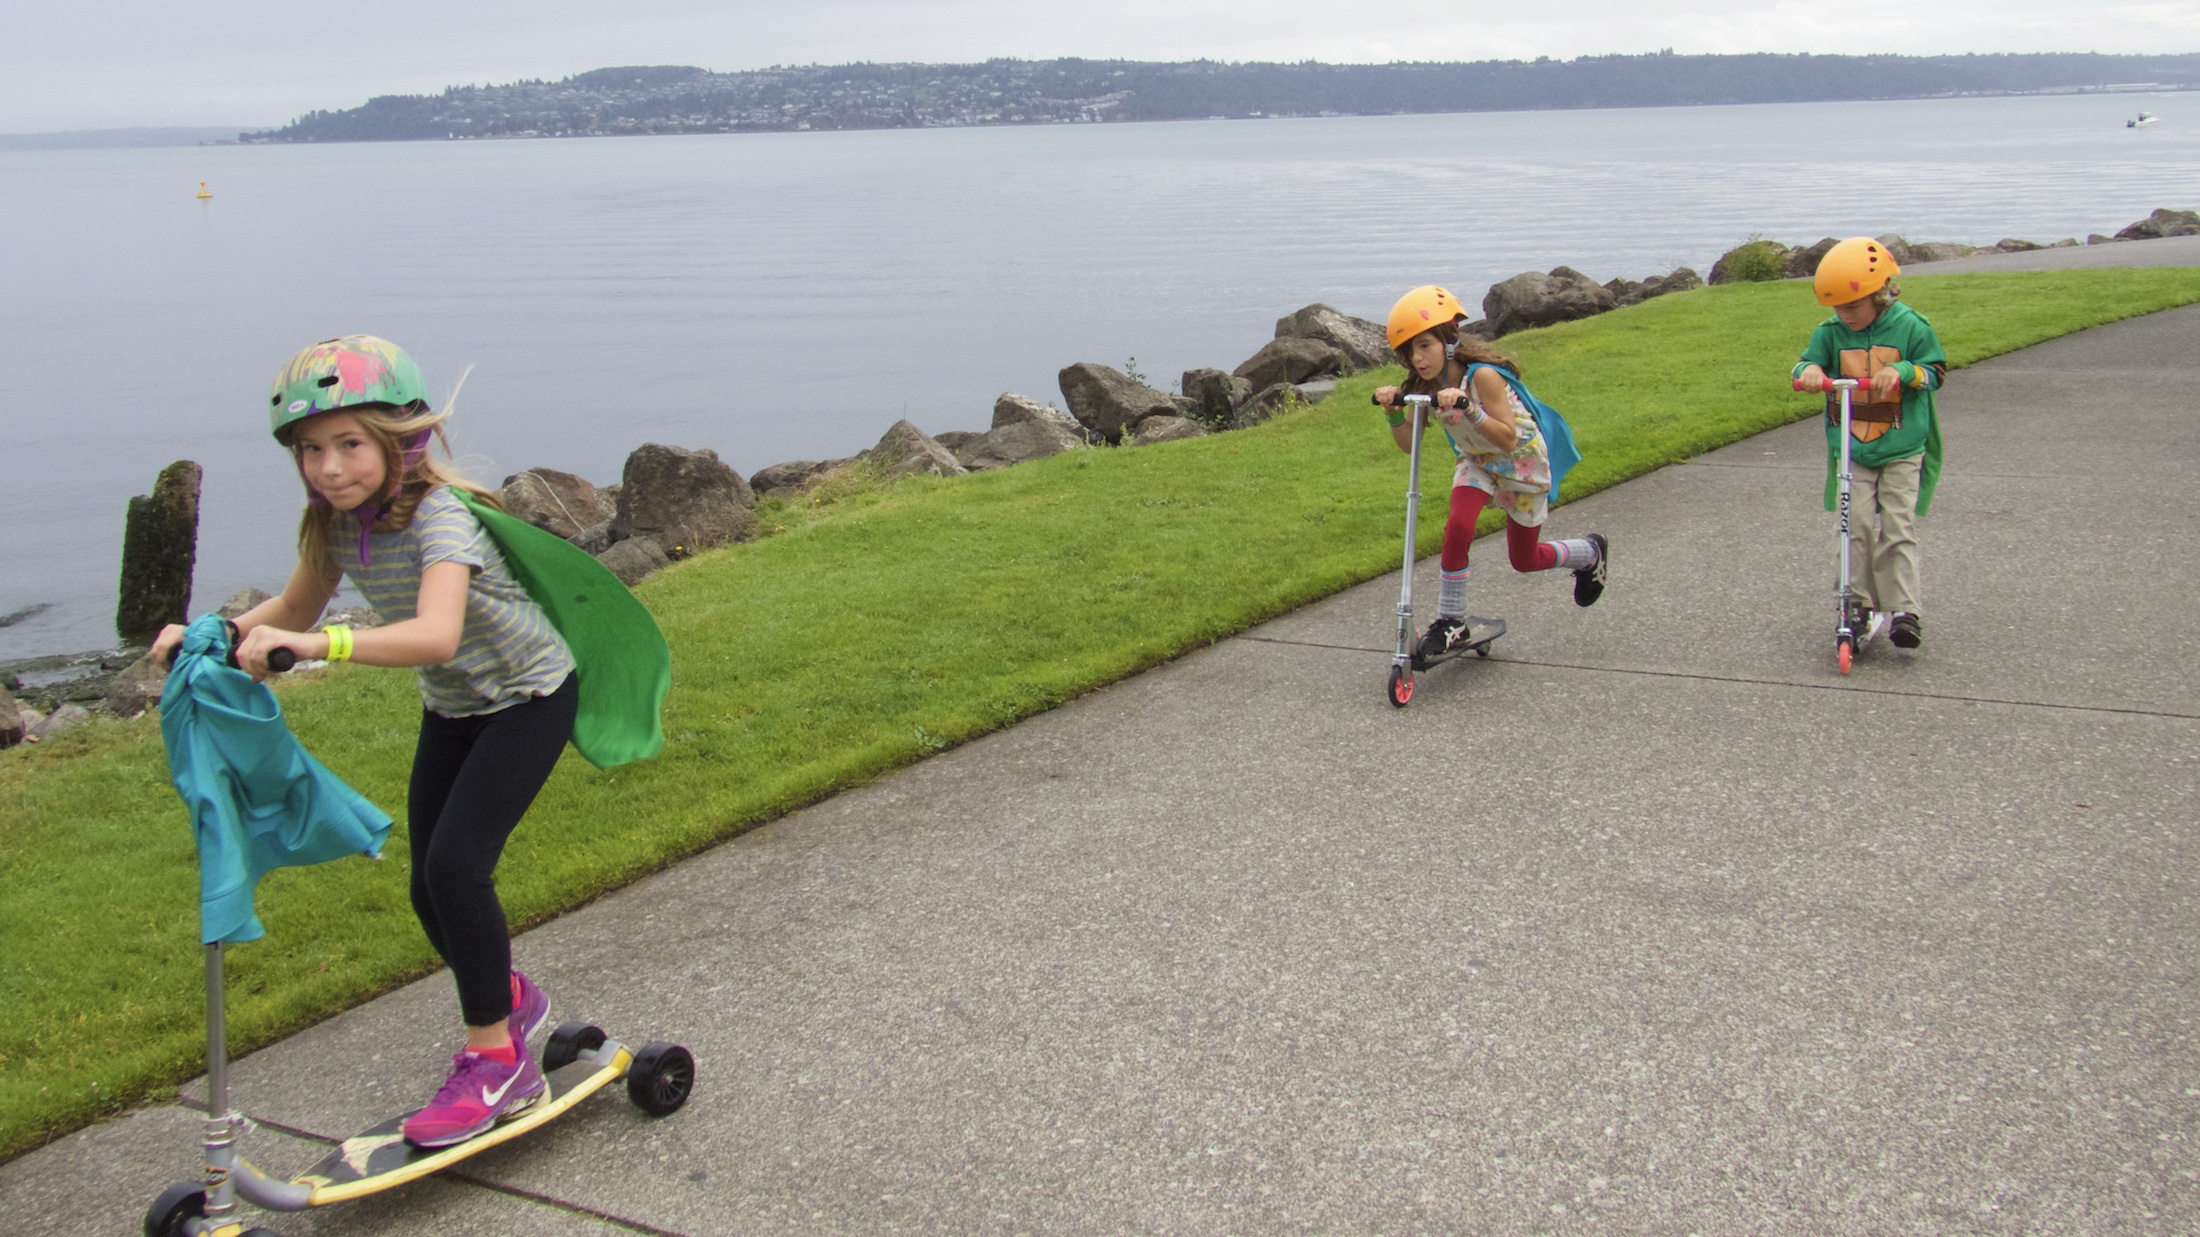 children scooters